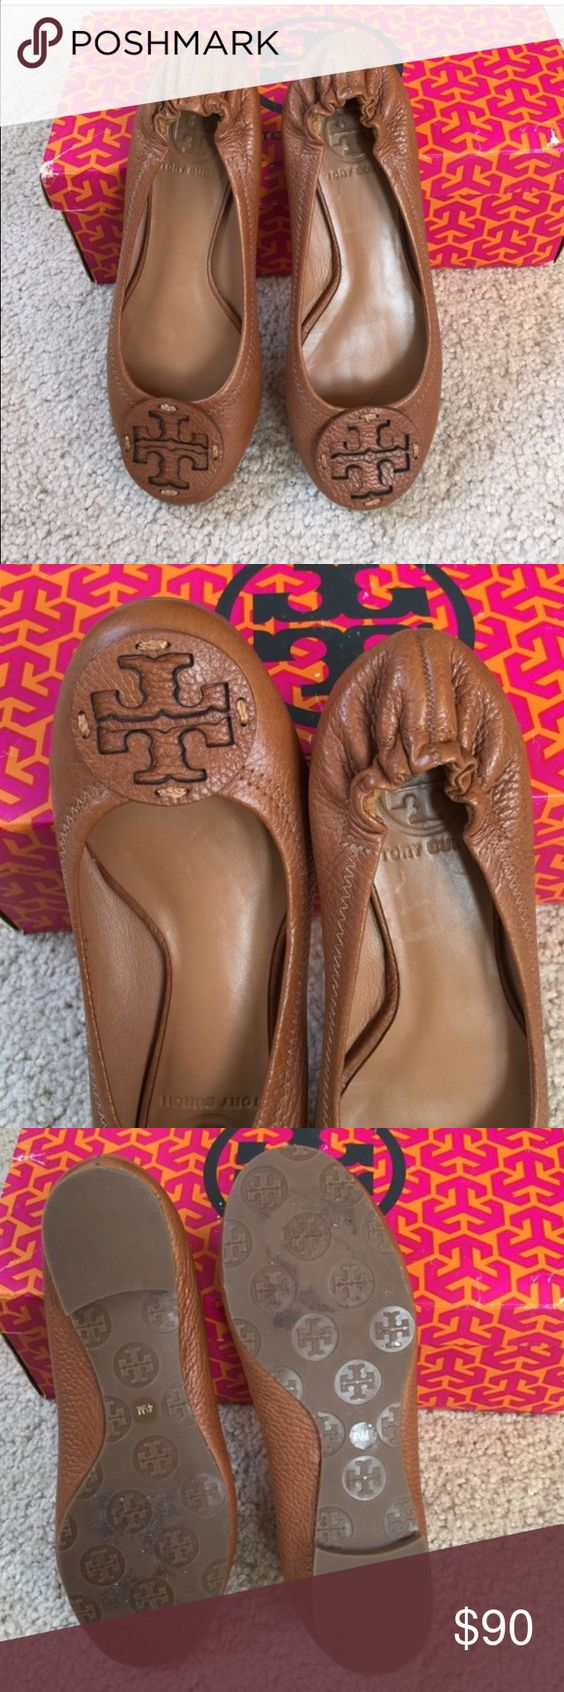 SOLD**Tory Burch Royal Tan Reva flats** SOLD ON M Beautiful Tory Burch Reva flats! These are in perfect condition! I absolute love these shoes but they are size 4.5 and I actually need a 5! Run very true to size! No flaws! Comes with original box without dust bag. Tory Burch Shoes Flats & Loafers